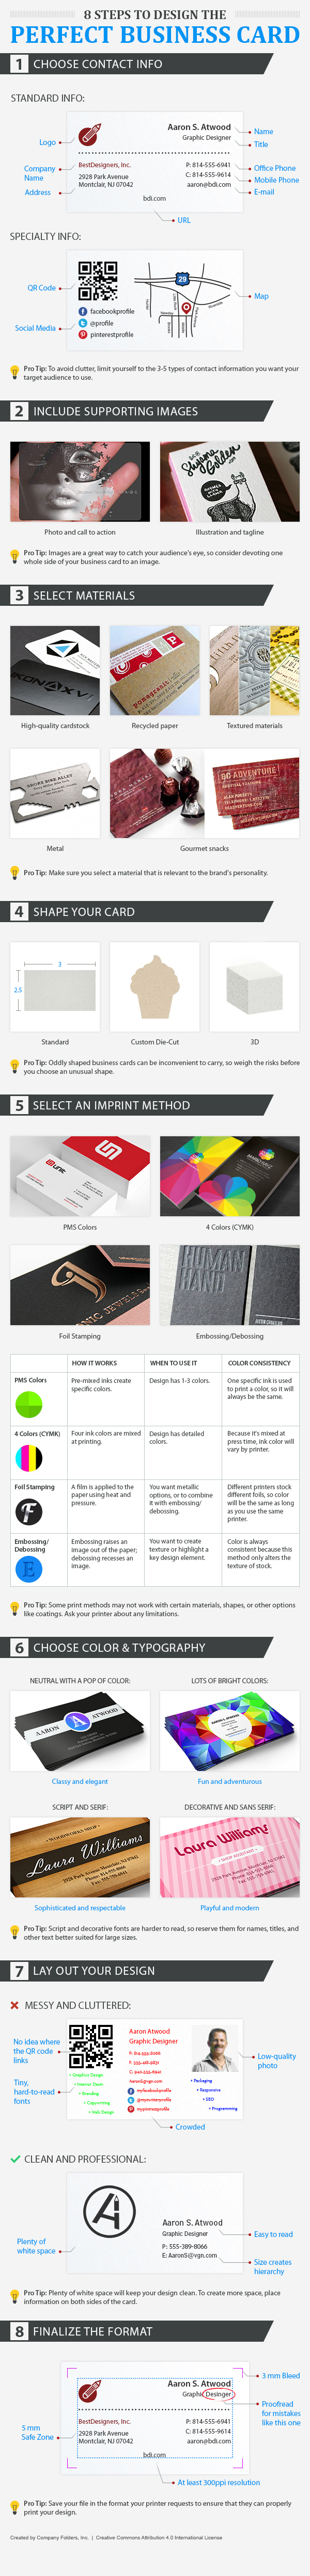 Why You Need A Business Card (And How to Make One) | Craft Maker Pro ...